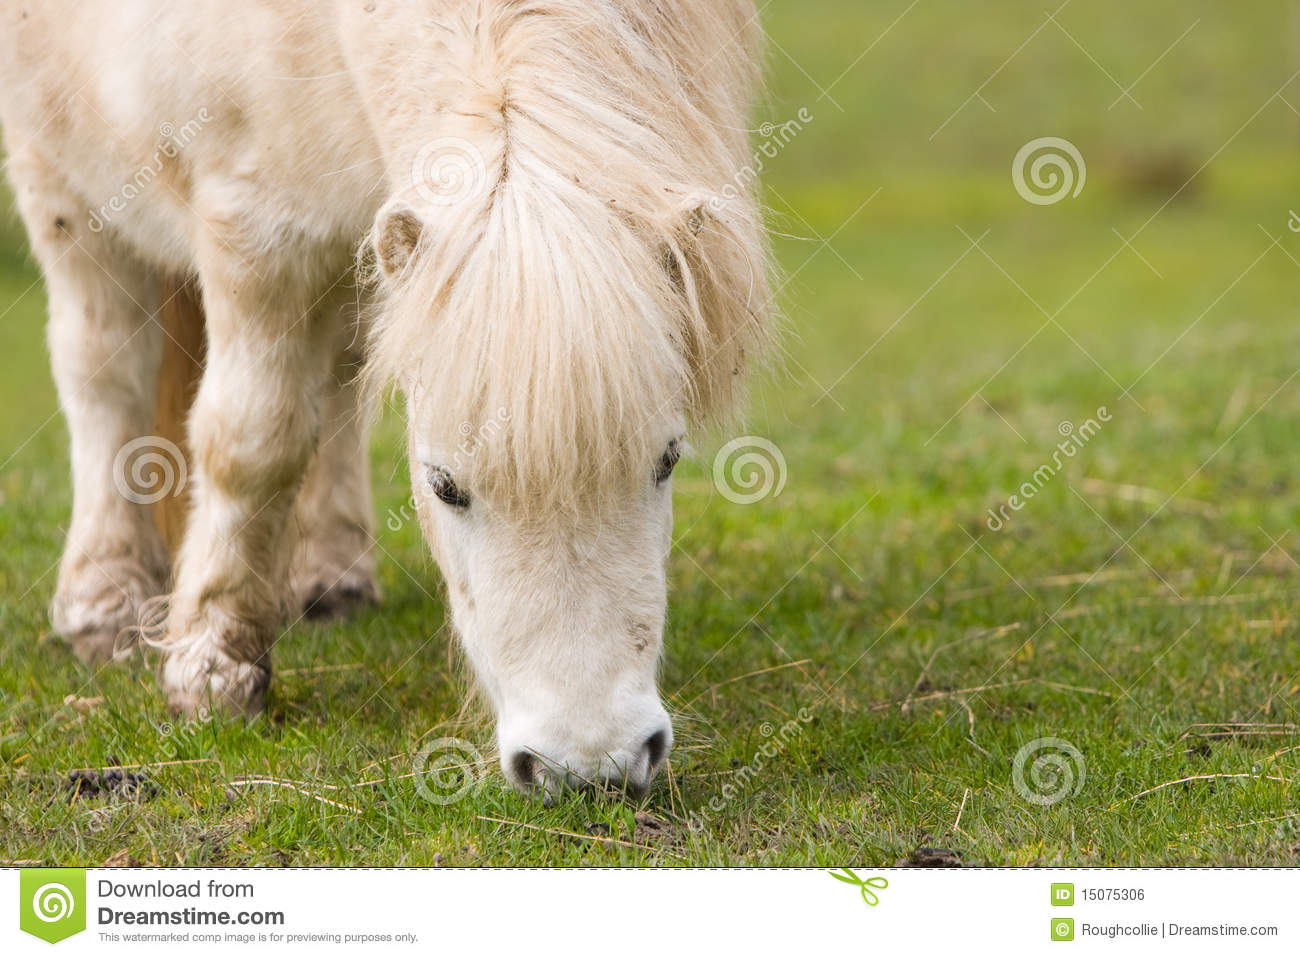 horse shetland pony grazing royalty free stock image image 15075306. Black Bedroom Furniture Sets. Home Design Ideas